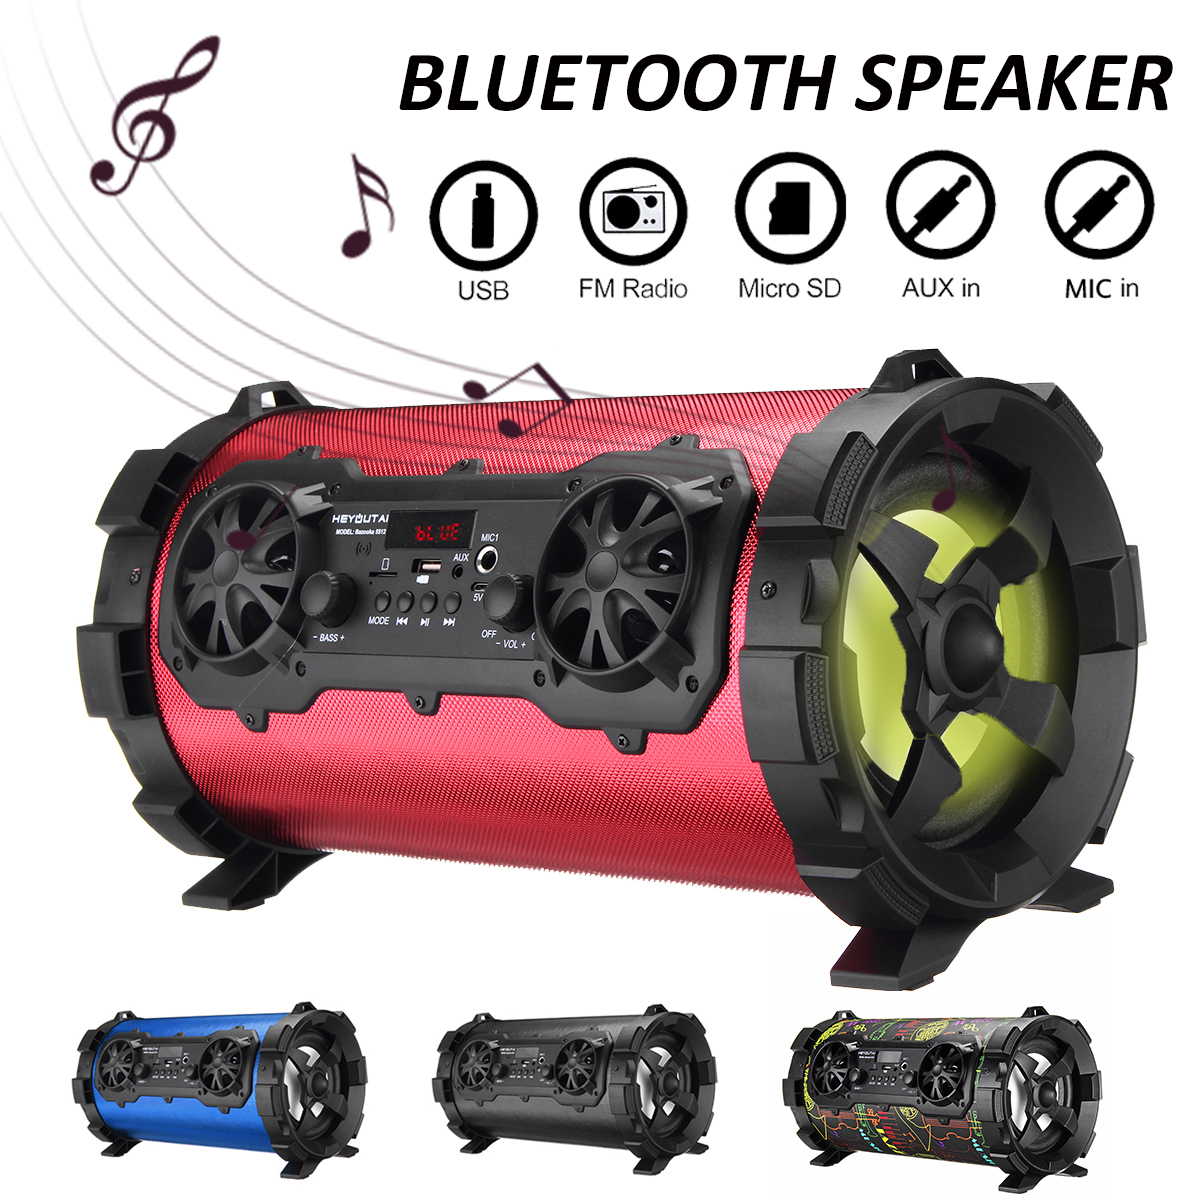 25W Wireless Bluetooth V4.1 Speaker Portable Loudspeaker Sound System AUX/USB/TF Card/Radio FM Outdoor Speaker Player Music getihu portable mini bluetooth speakers wireless hands free led speaker tf usb fm sound music for iphone x samsung mobile phone